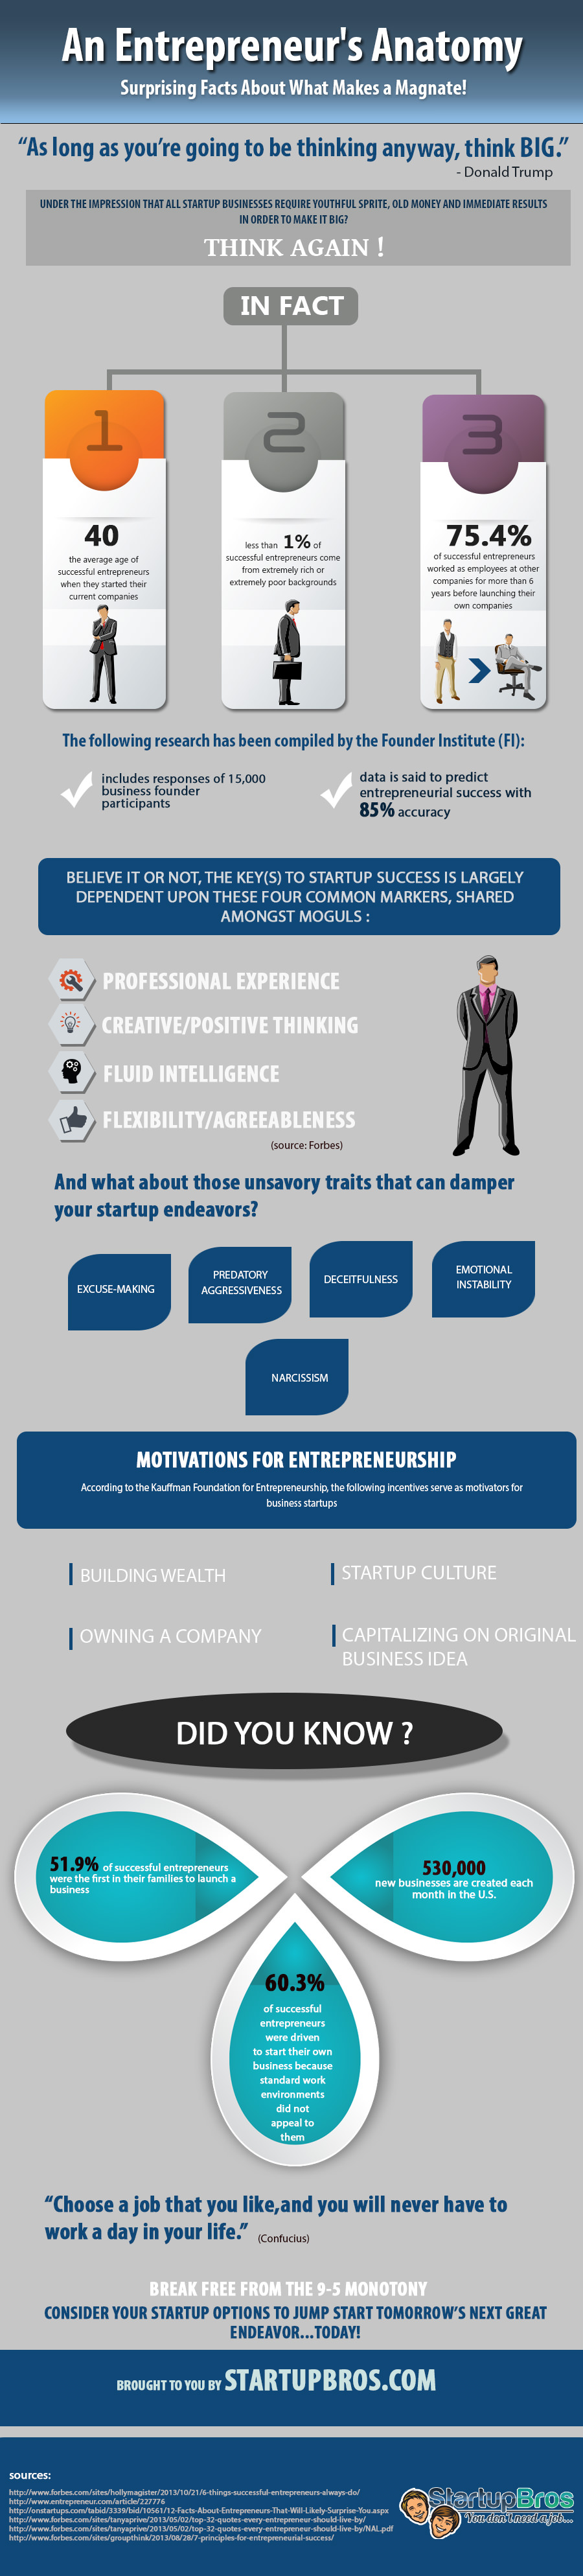 A typical journey of an entrepreneur